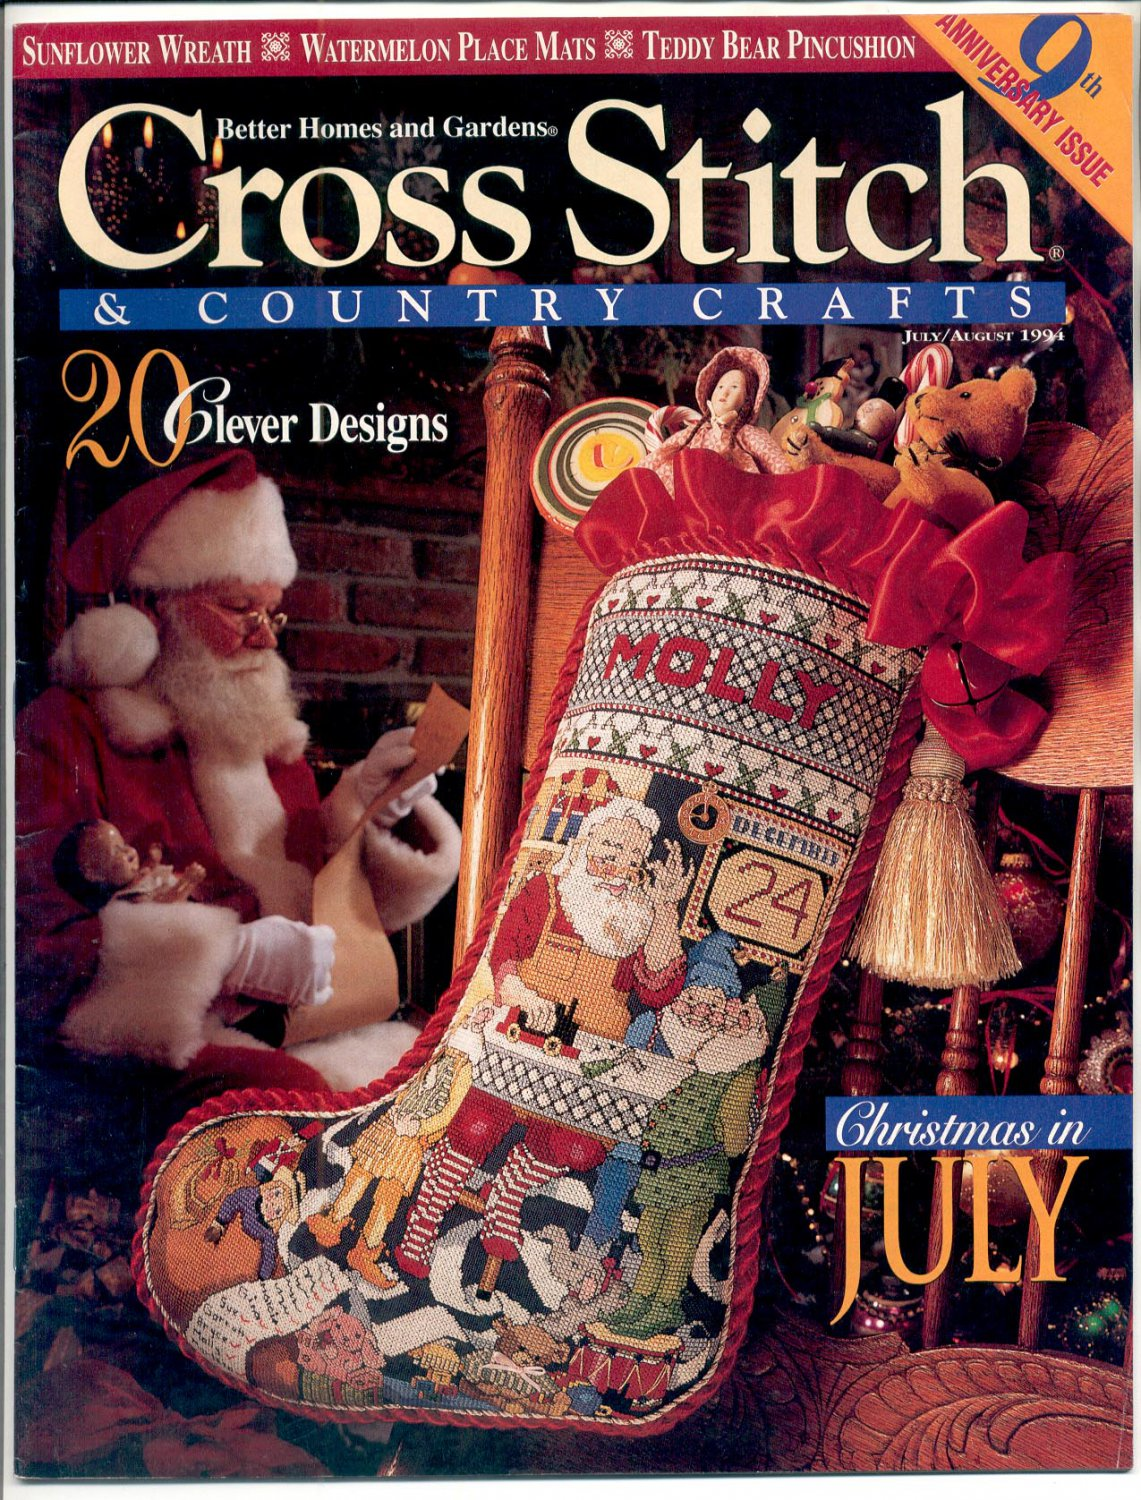 Cross stitch country crafts magazine back issues - Cross Stitch Country Crafts Back Issue Magazine July August 1994 Mint